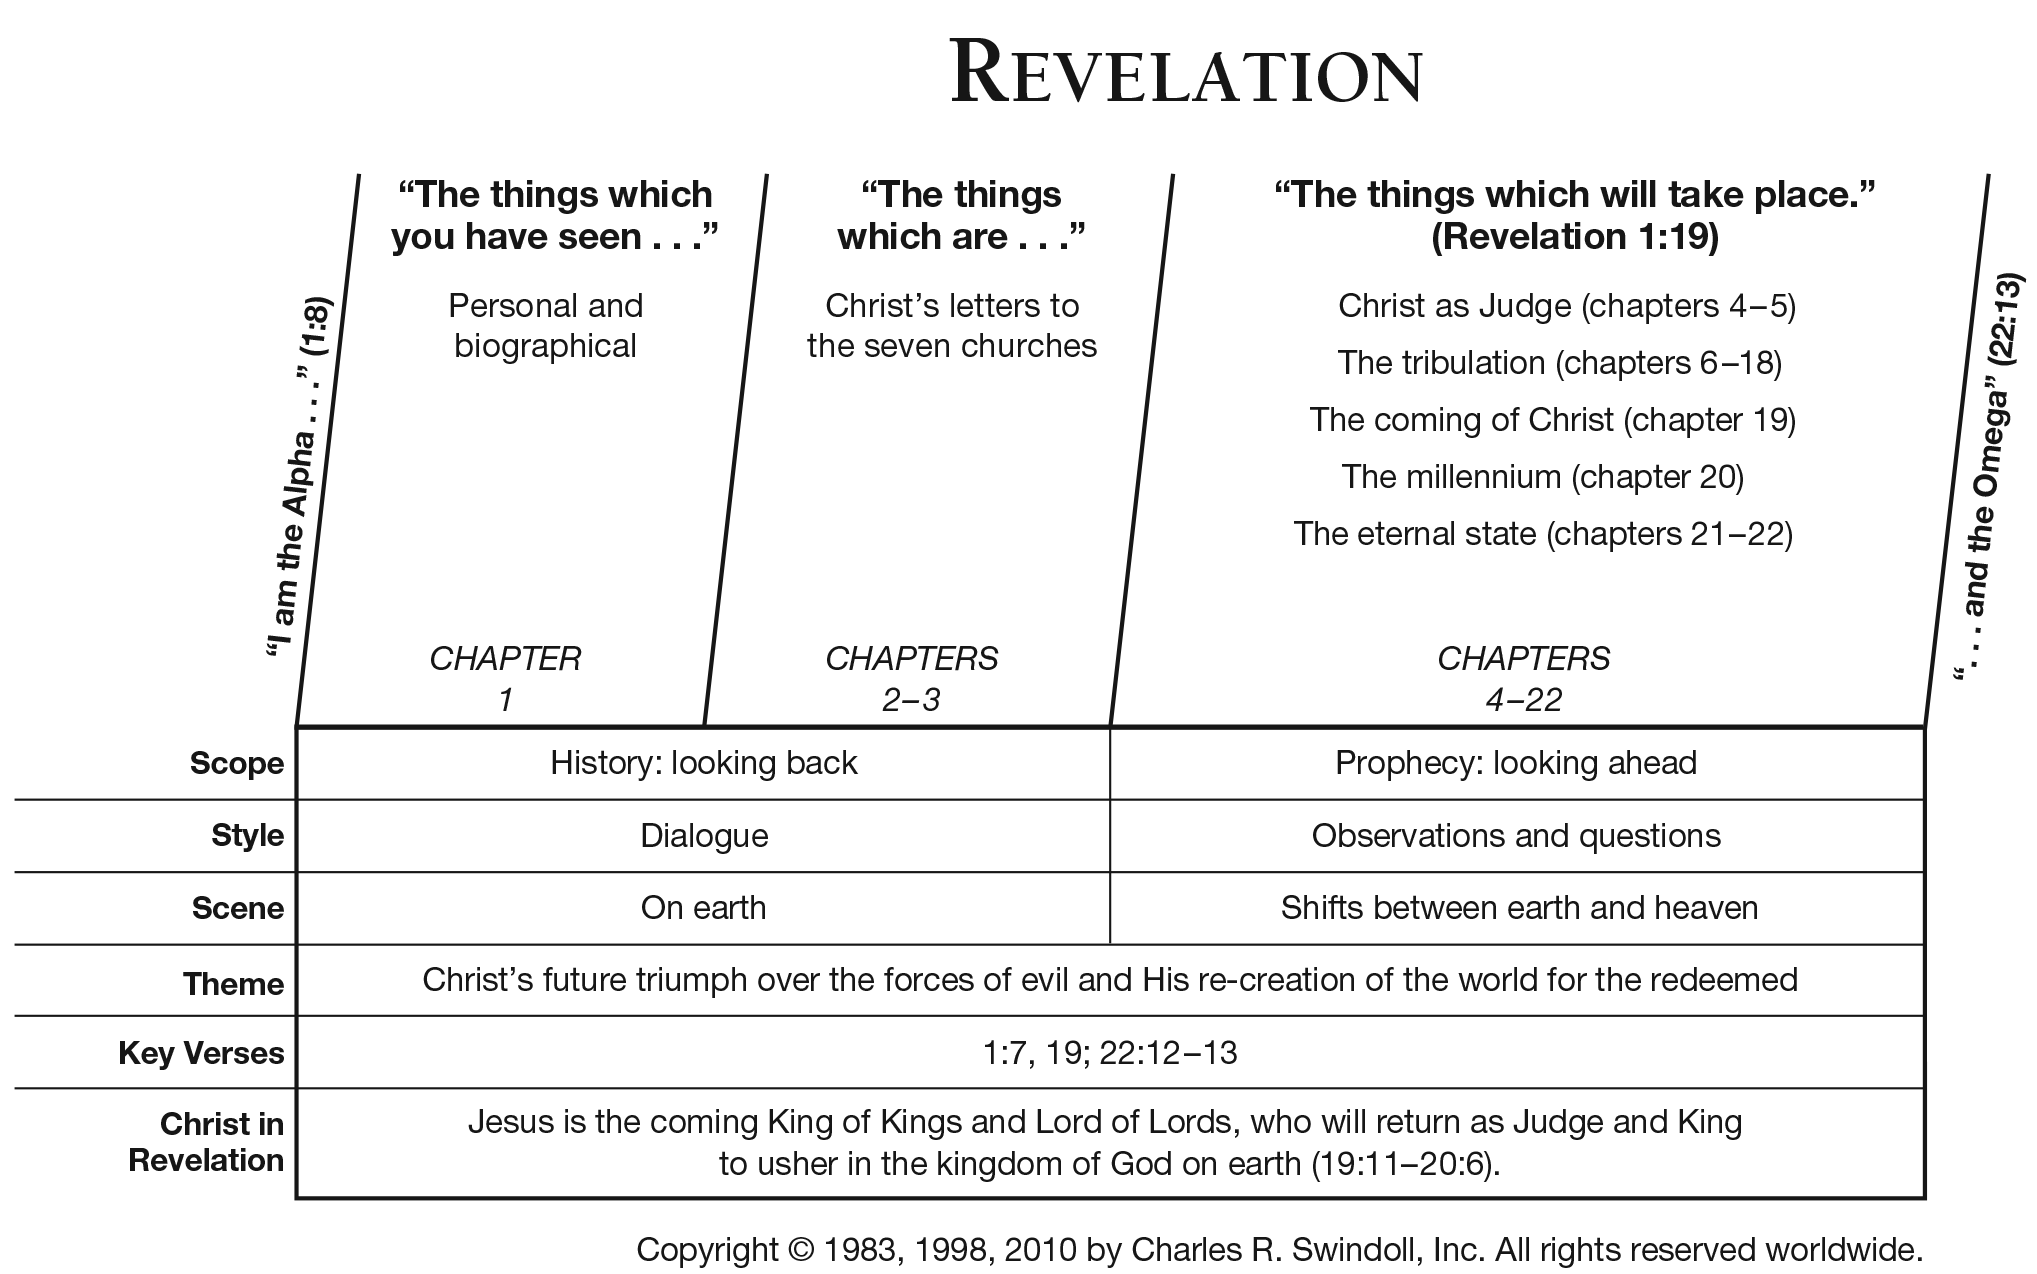 View Chuck Swindoll S Chart Of Revelation Which Divides The Book Into Major Sections And Highlights Themes Key Verses